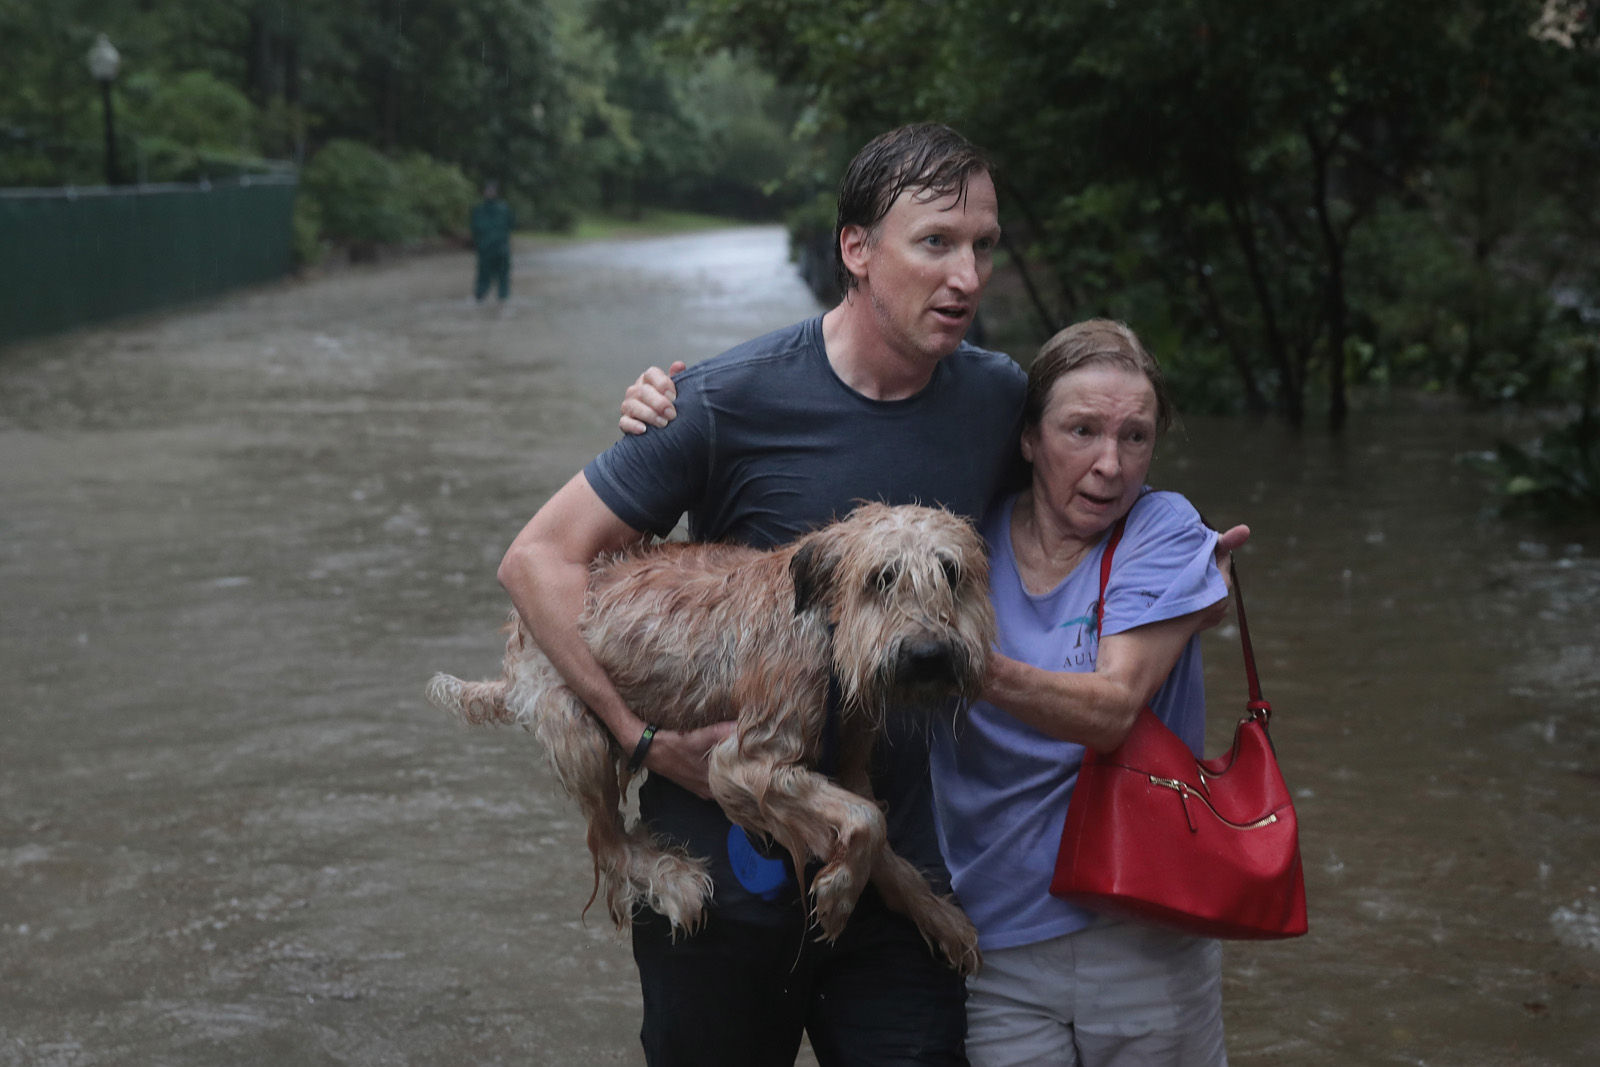 Andrew White (L) helps a neighbor down a street after rescuing her from her home in his boat in the upscale River Oaks neighborhood after it was inundated with flooding from Hurricane Harvey on Aug. 27, 2017 in Houston, Texas. Harvey, which made landfall north of Corpus Christi late Friday evening, is expected to dump upwards to 40 inches of rain in Texas over the next couple of days.  (Photo by Scott Olson/Getty Images)